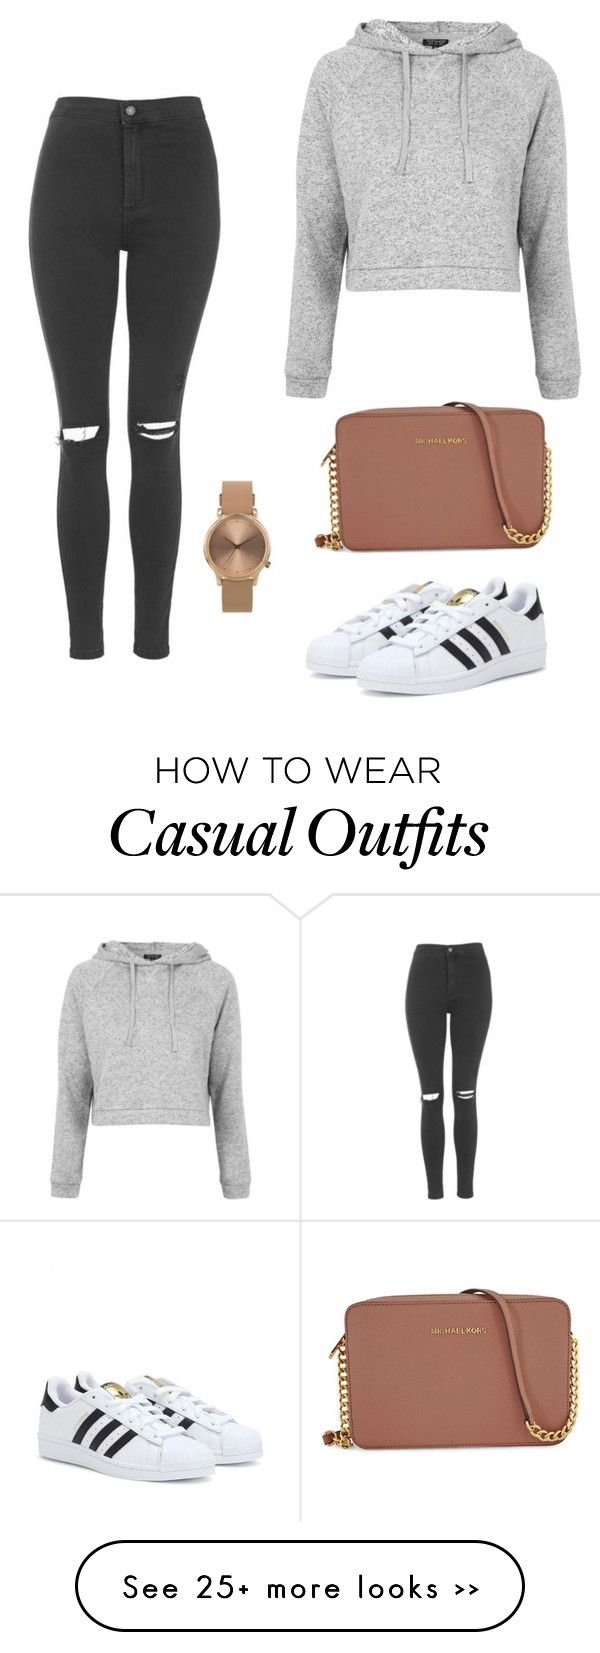 """d611 """"Casual outting"""" by nelly-niblett on Polyvore featuring Topshop, adidas and…"""